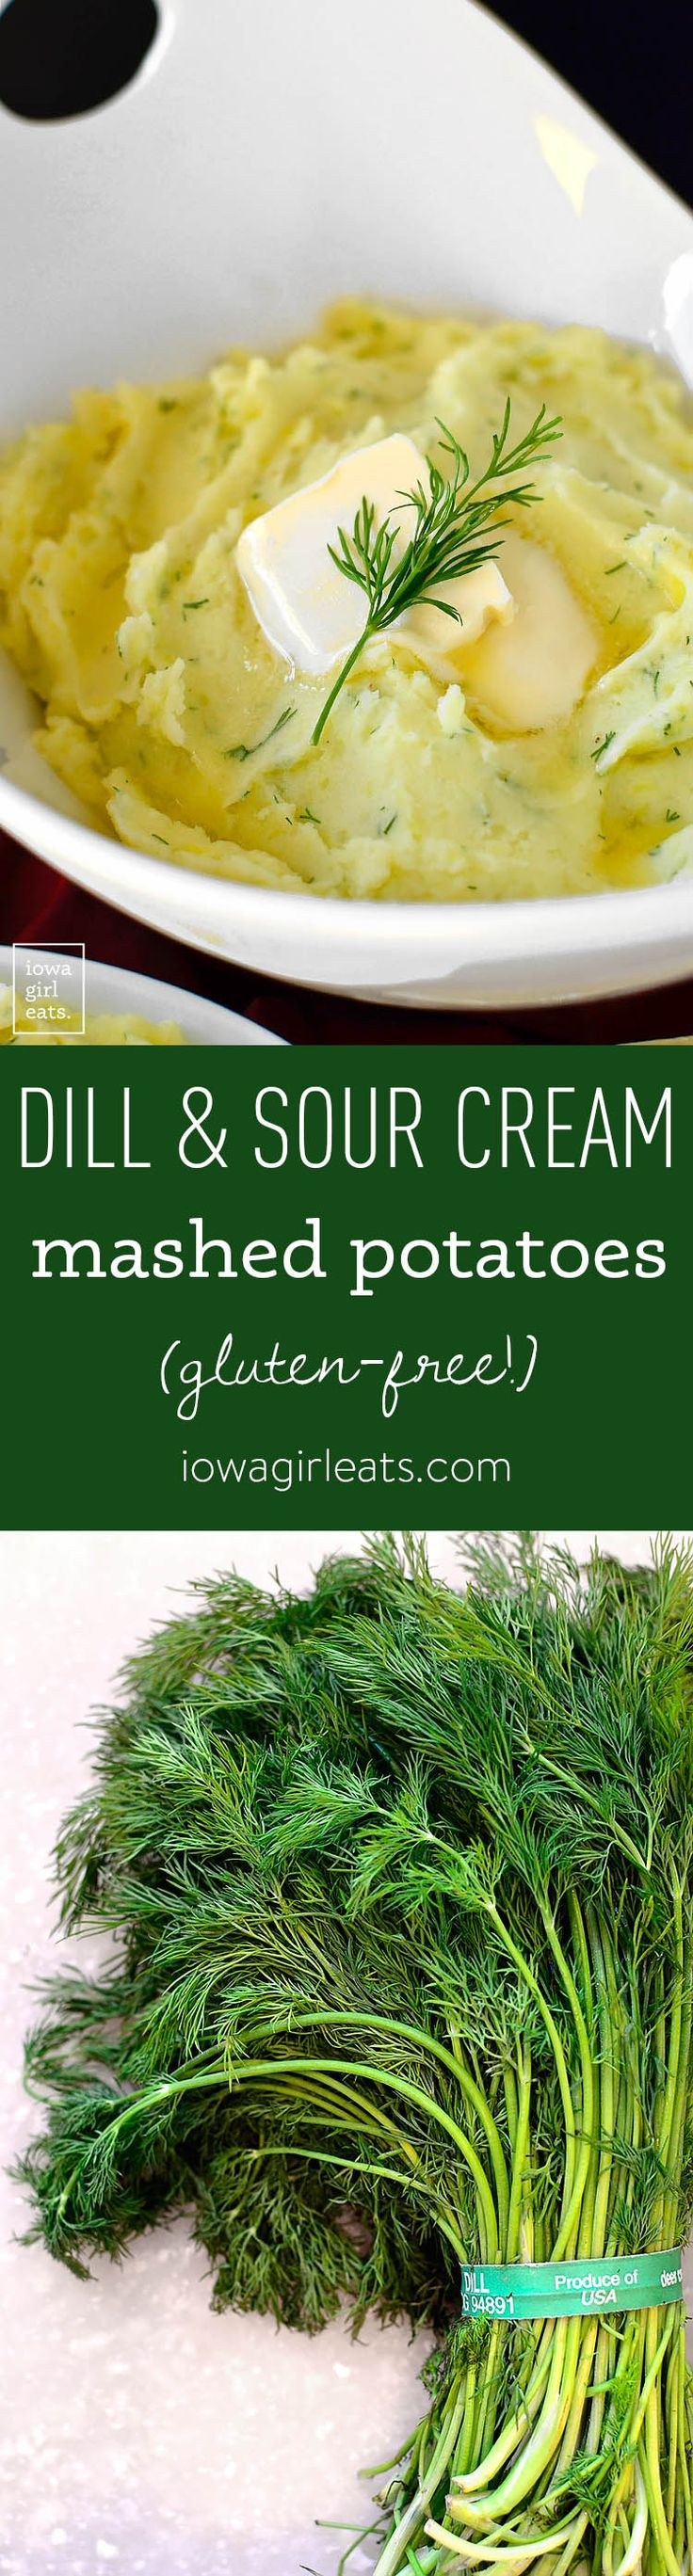 If you love sour cream and onion potato chips than you'll flip for Sour Cream and Dill Mashed Potatoes. An easy and delicious gluten-free side dish!